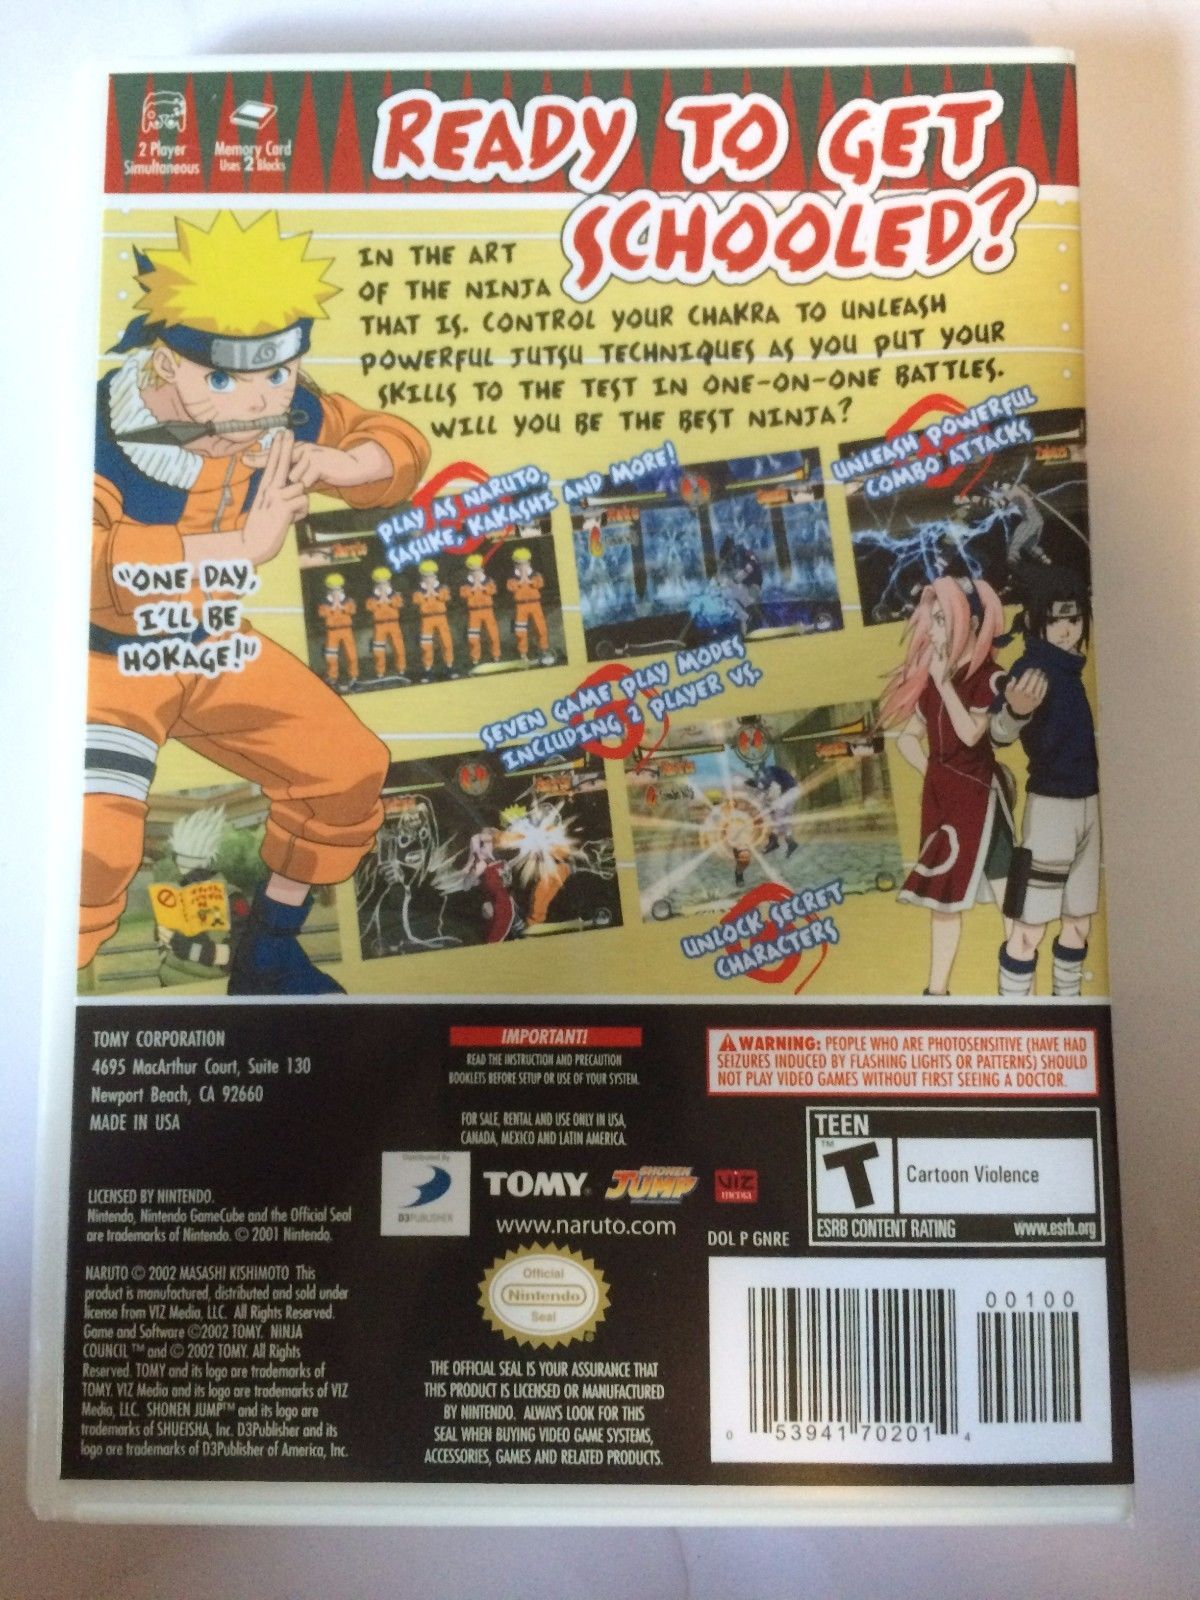 Naruto Clash of the Ninja - Gamecube - Replacement Case - No Game